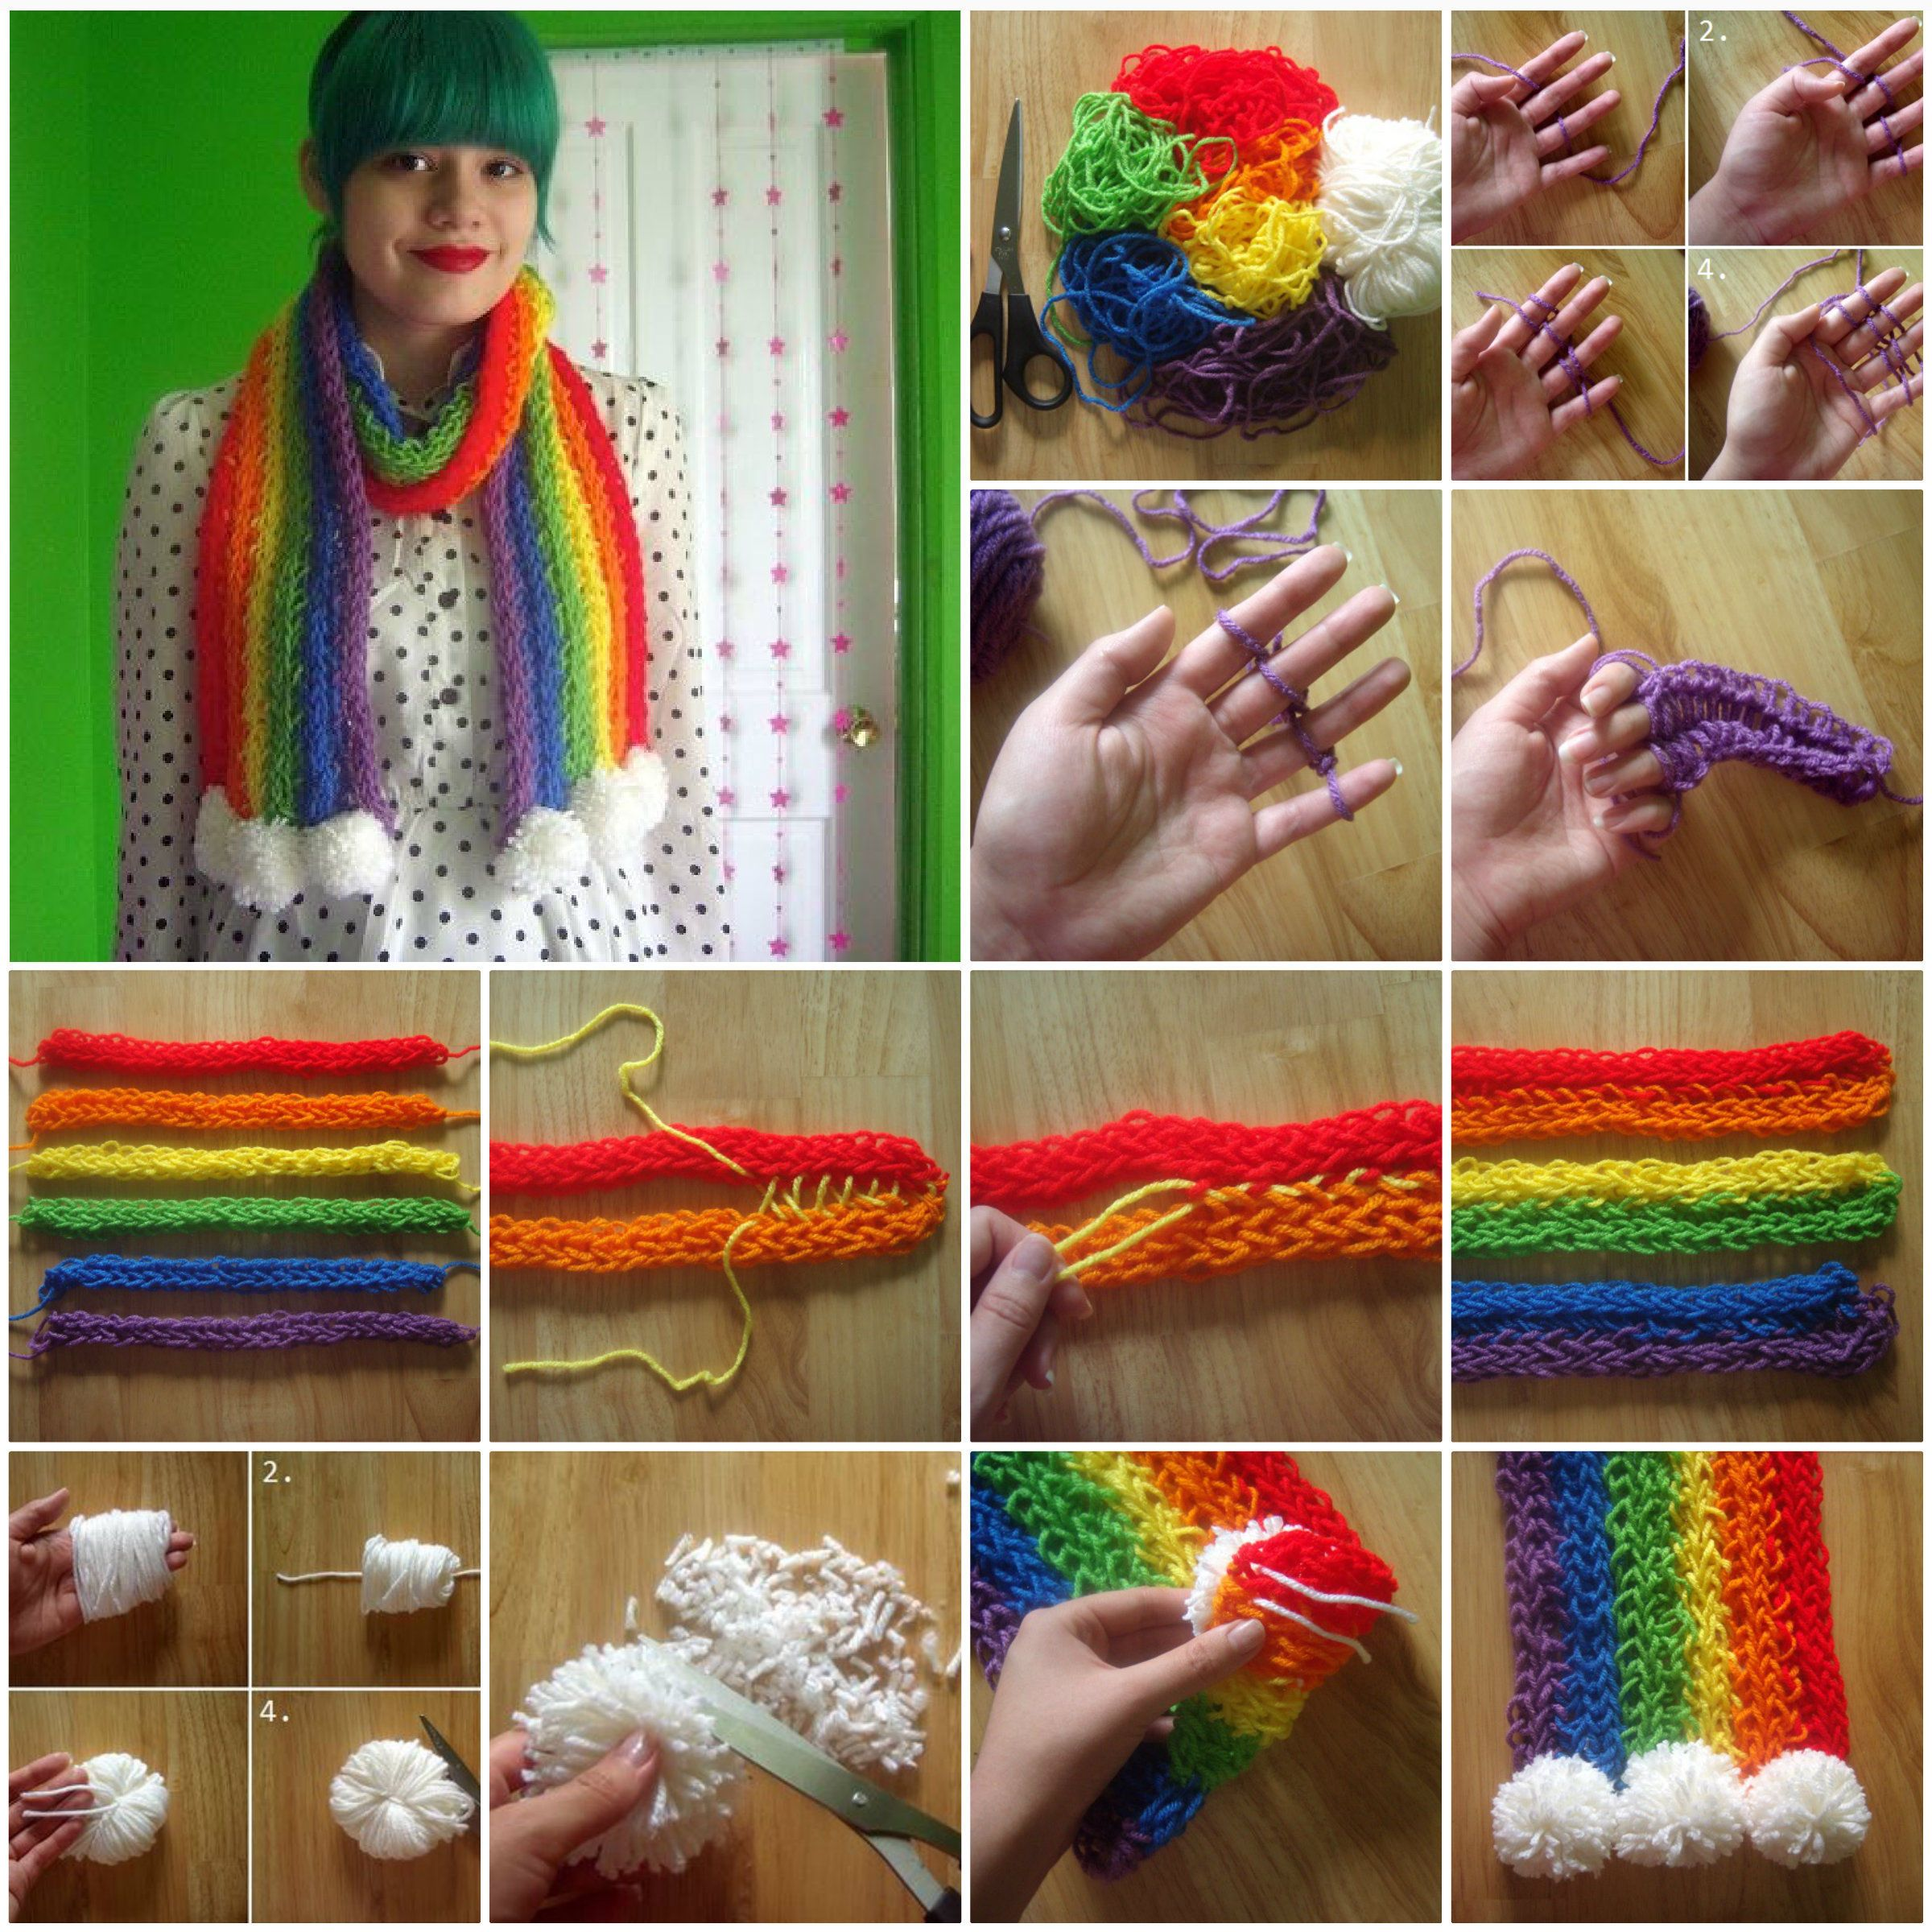 How To Knit A Scarf With Your Fingers Fashion Scarf Diy Craft Crafts Diy Ideas Diy Crafts Craft Gi Finger Knitting Projects Finger Knitting Diy Finger Knitting,Brandy Alexander Cocktail